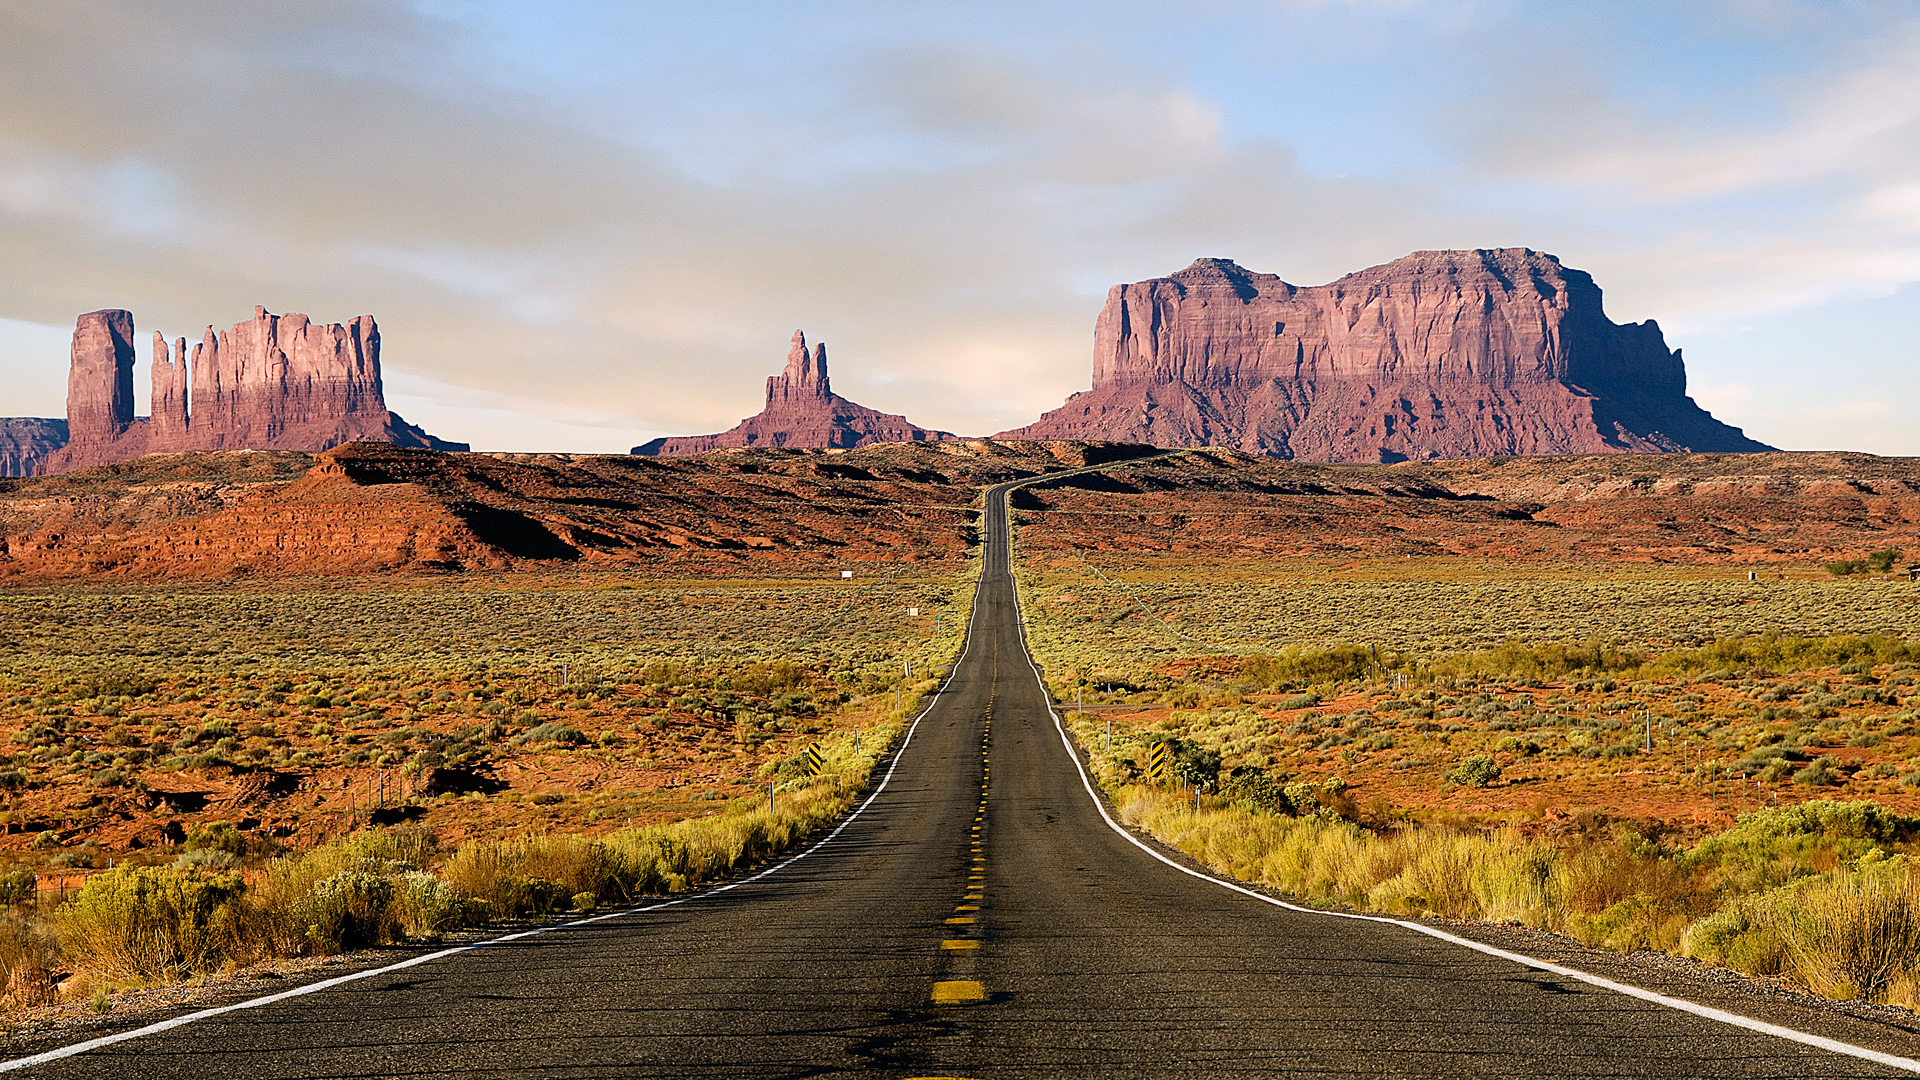 Route 66 desktop wallpapers United States of America wallpapers 1920x1080